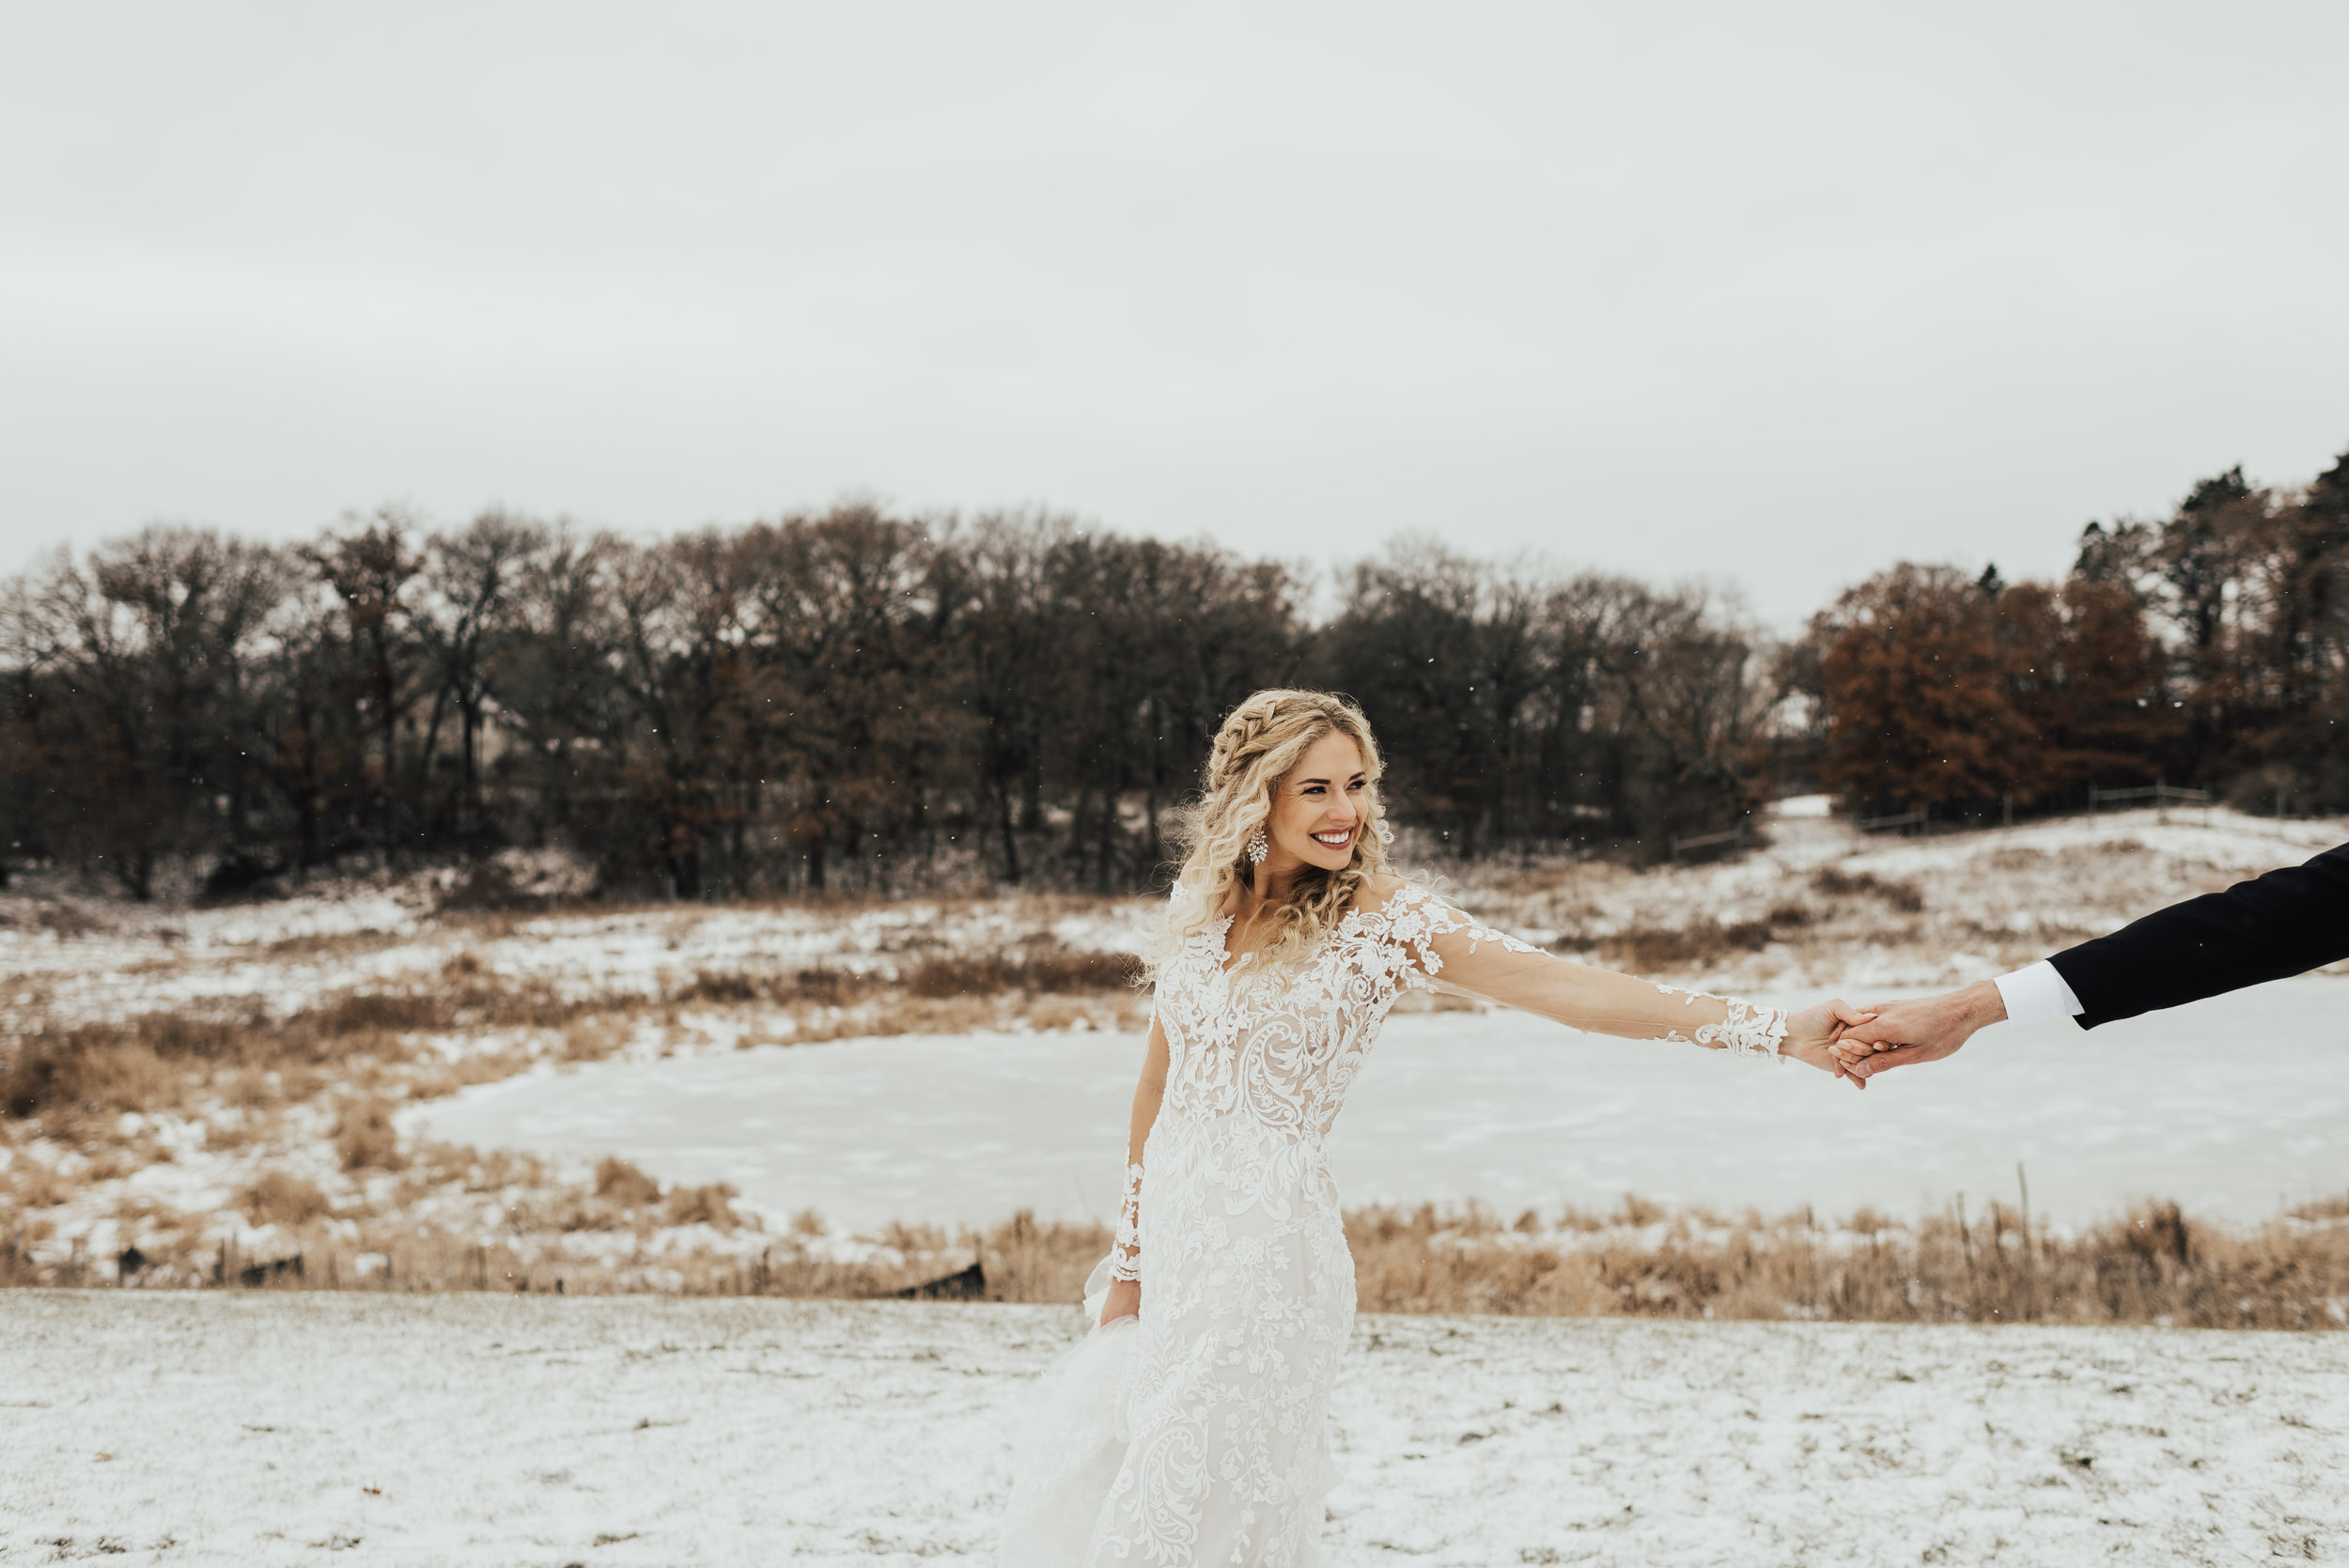 Steena-Anne-Winter-Vineyard-Wedding91.jpg